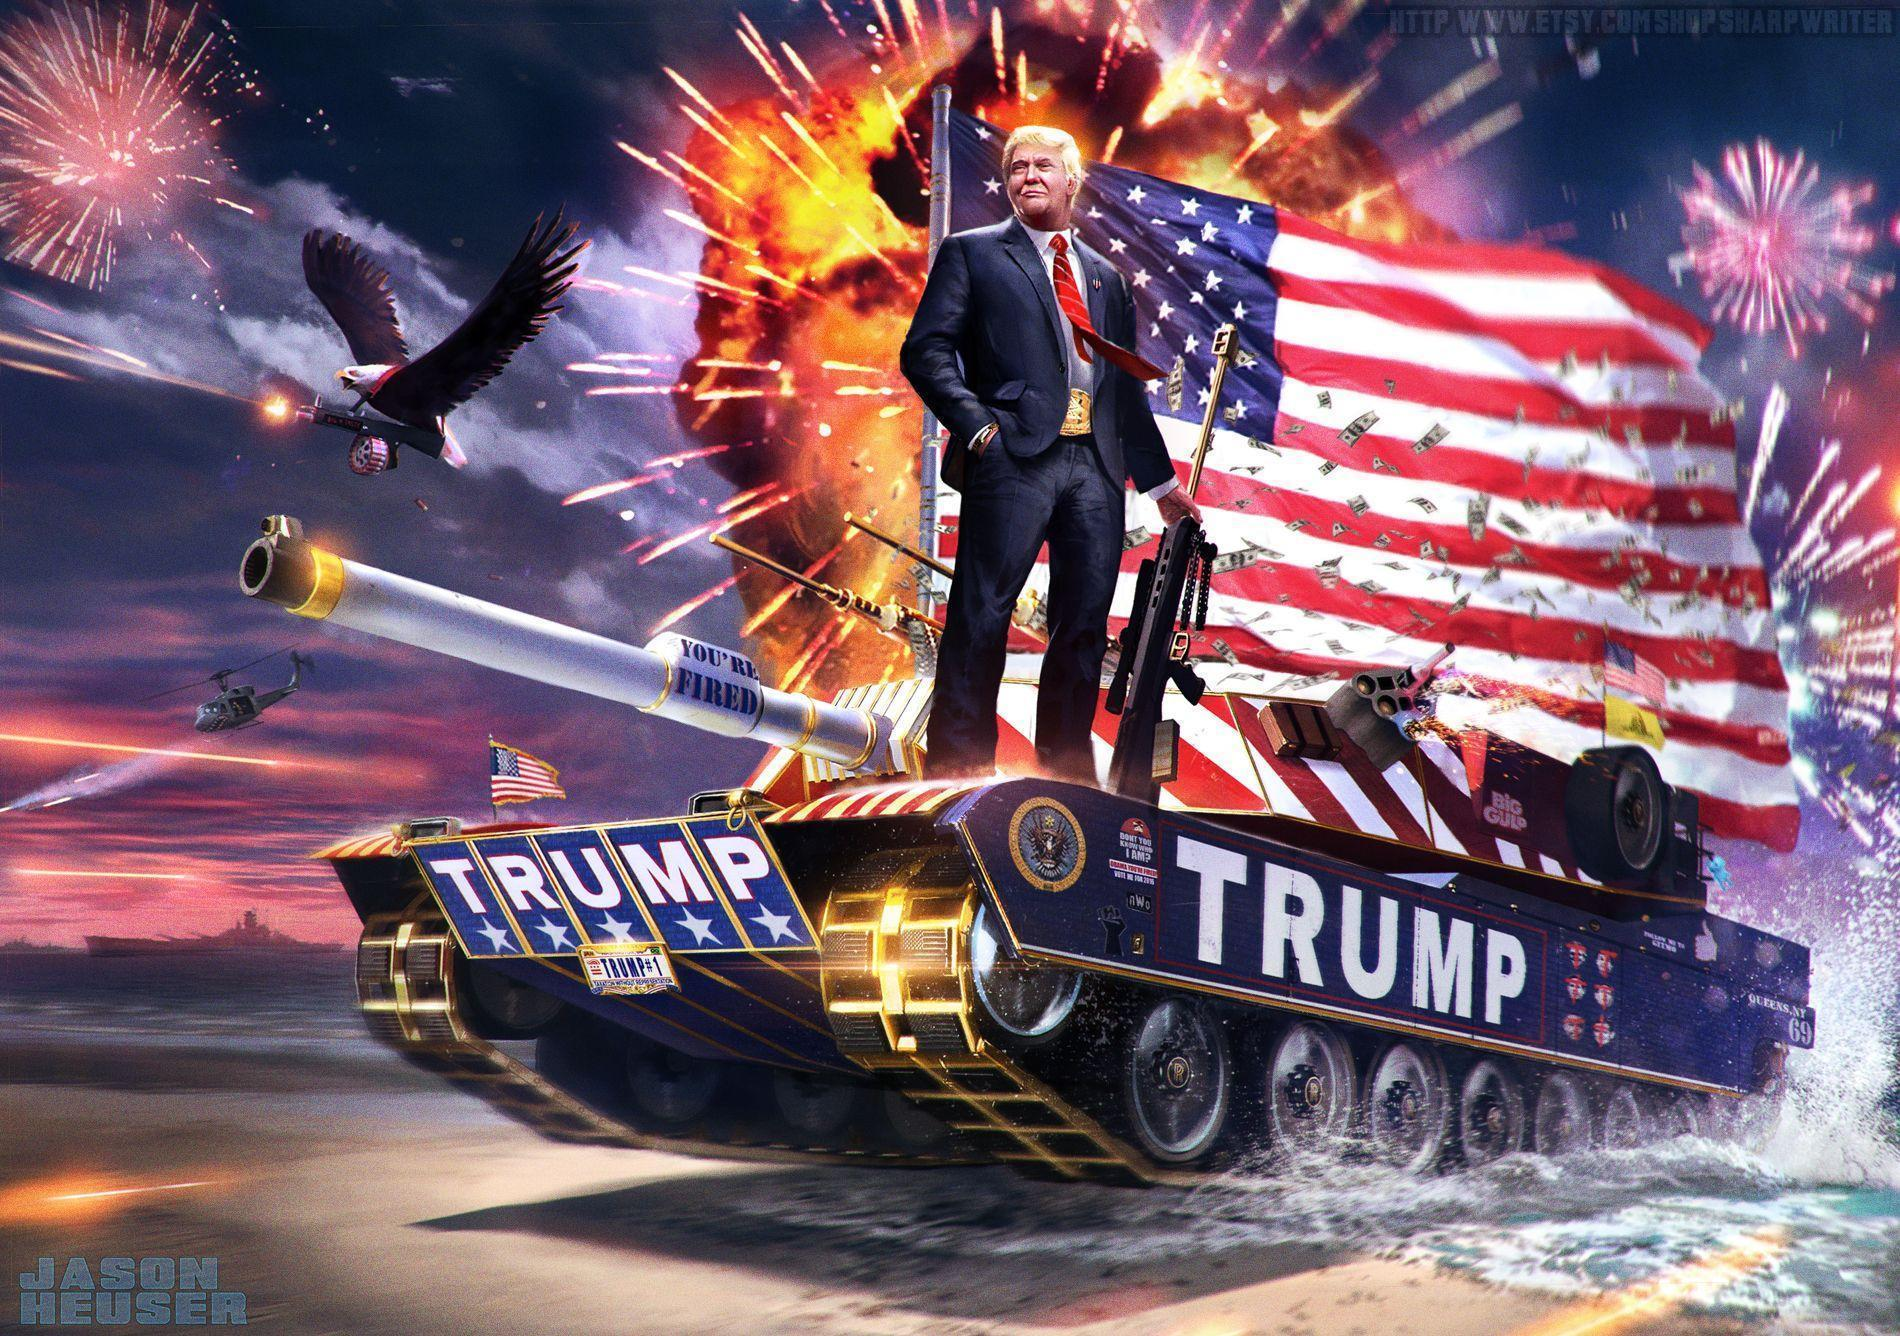 Trump 2020 Wallpaper